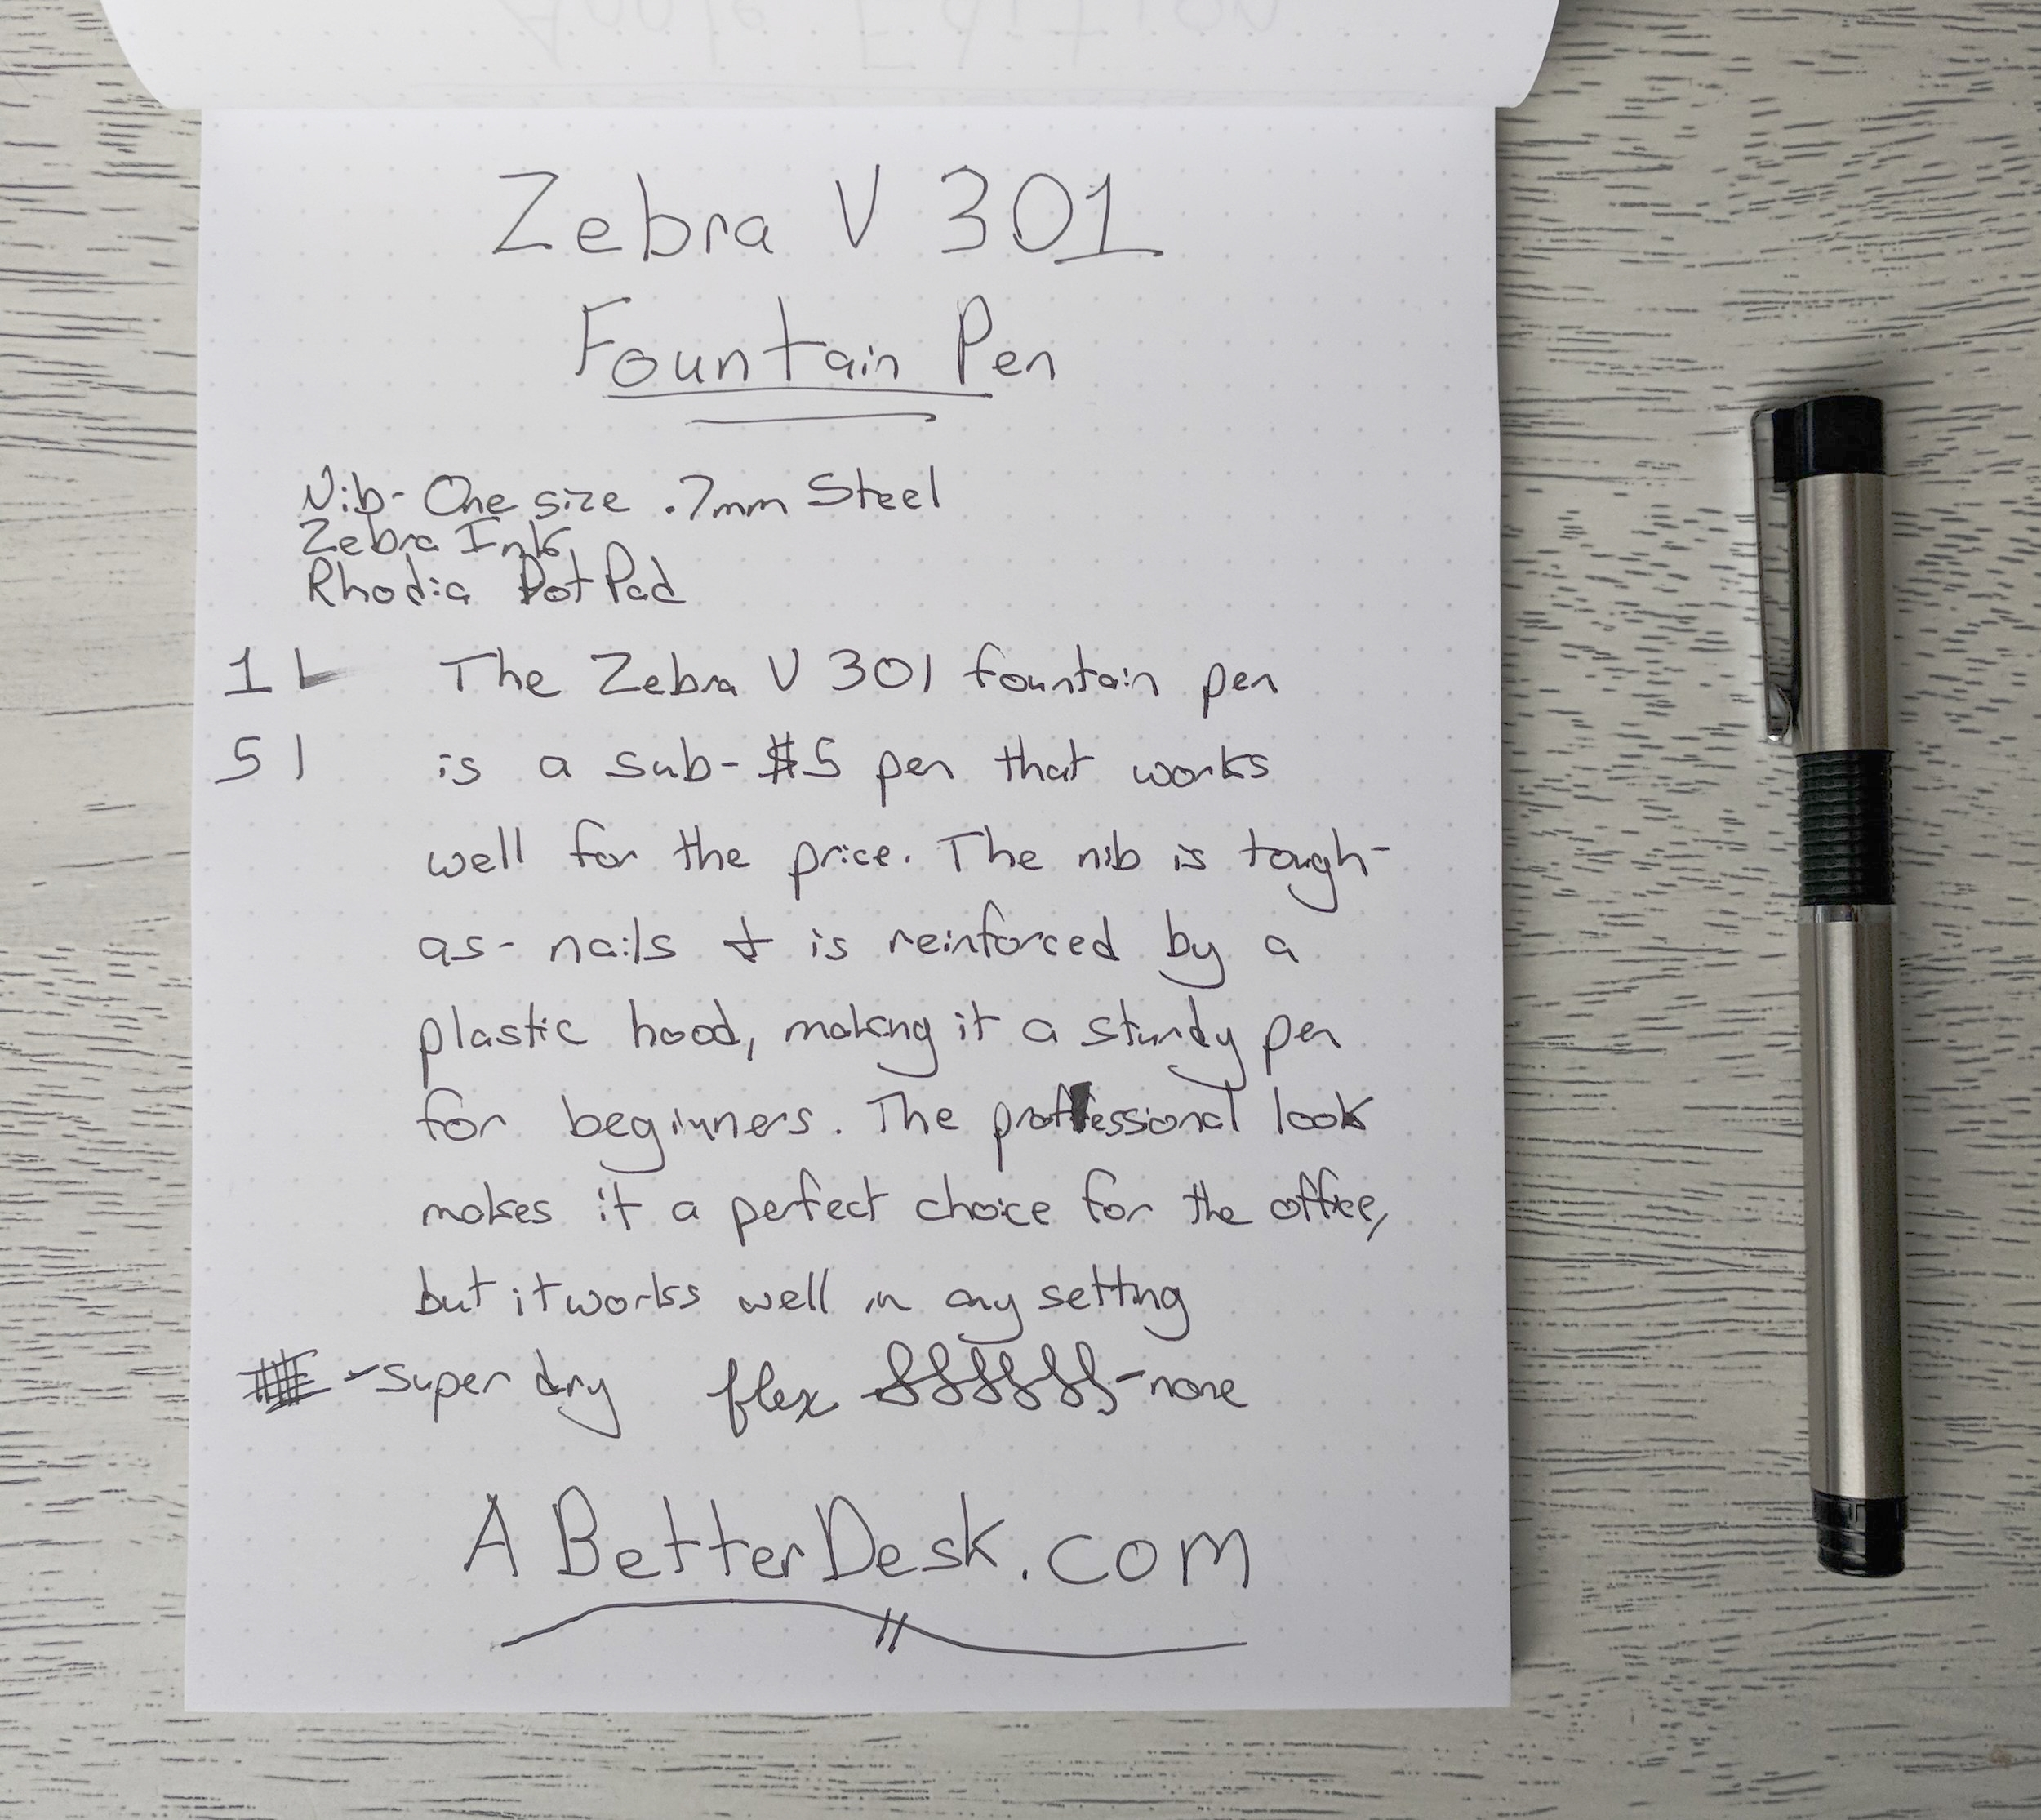 Zebra V 301 Fountain Pen Review Written Review.jpg